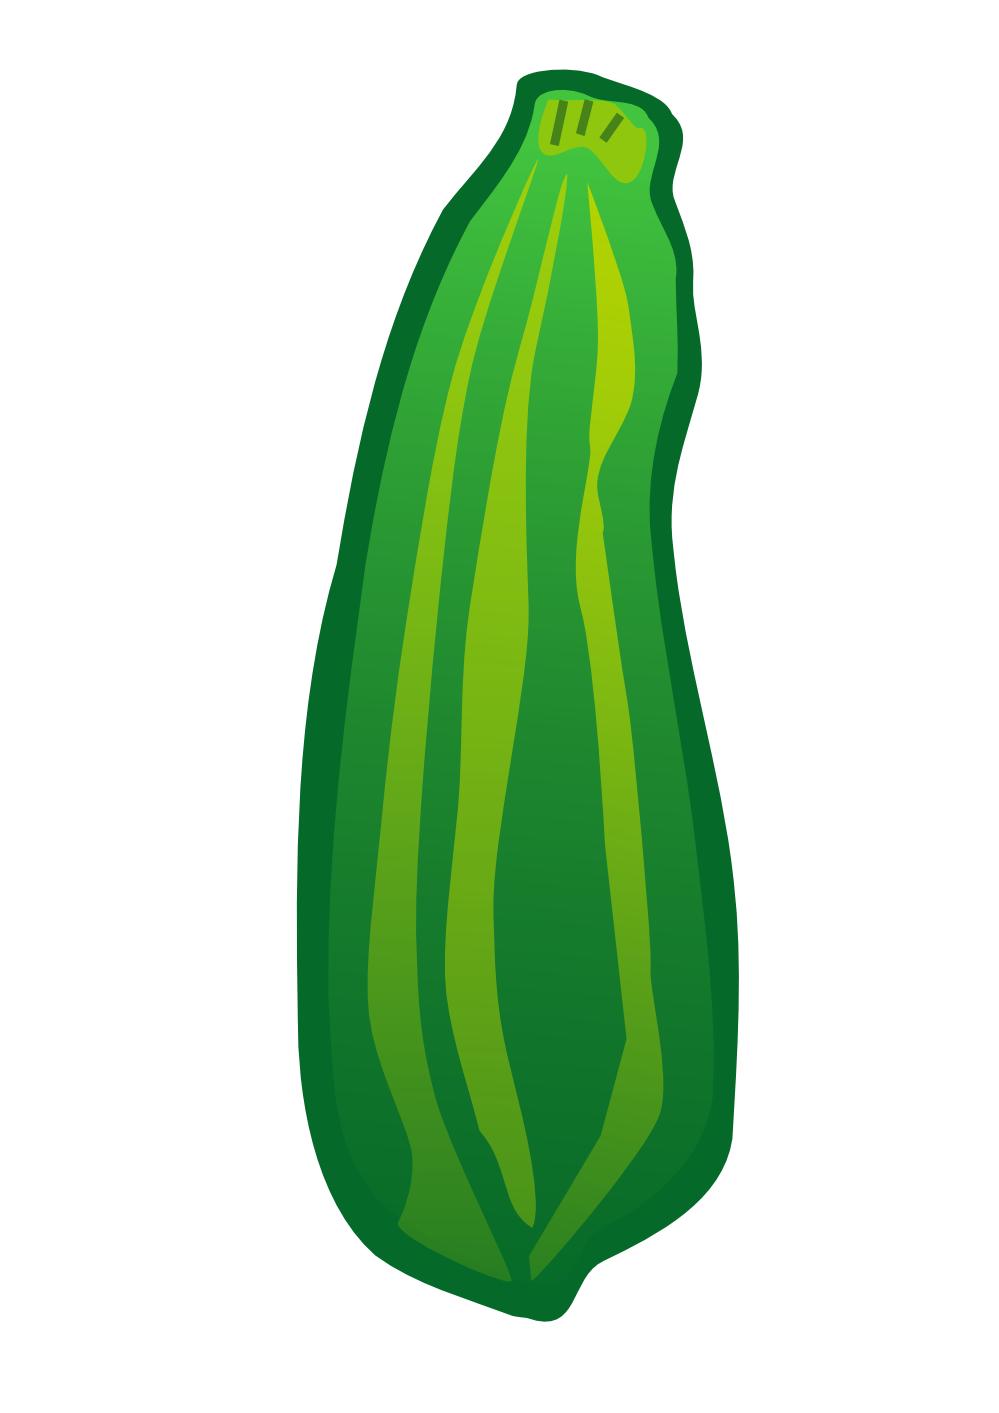 download clipart, cartoon cucumber clipart cucumber vegetable clip art #31788